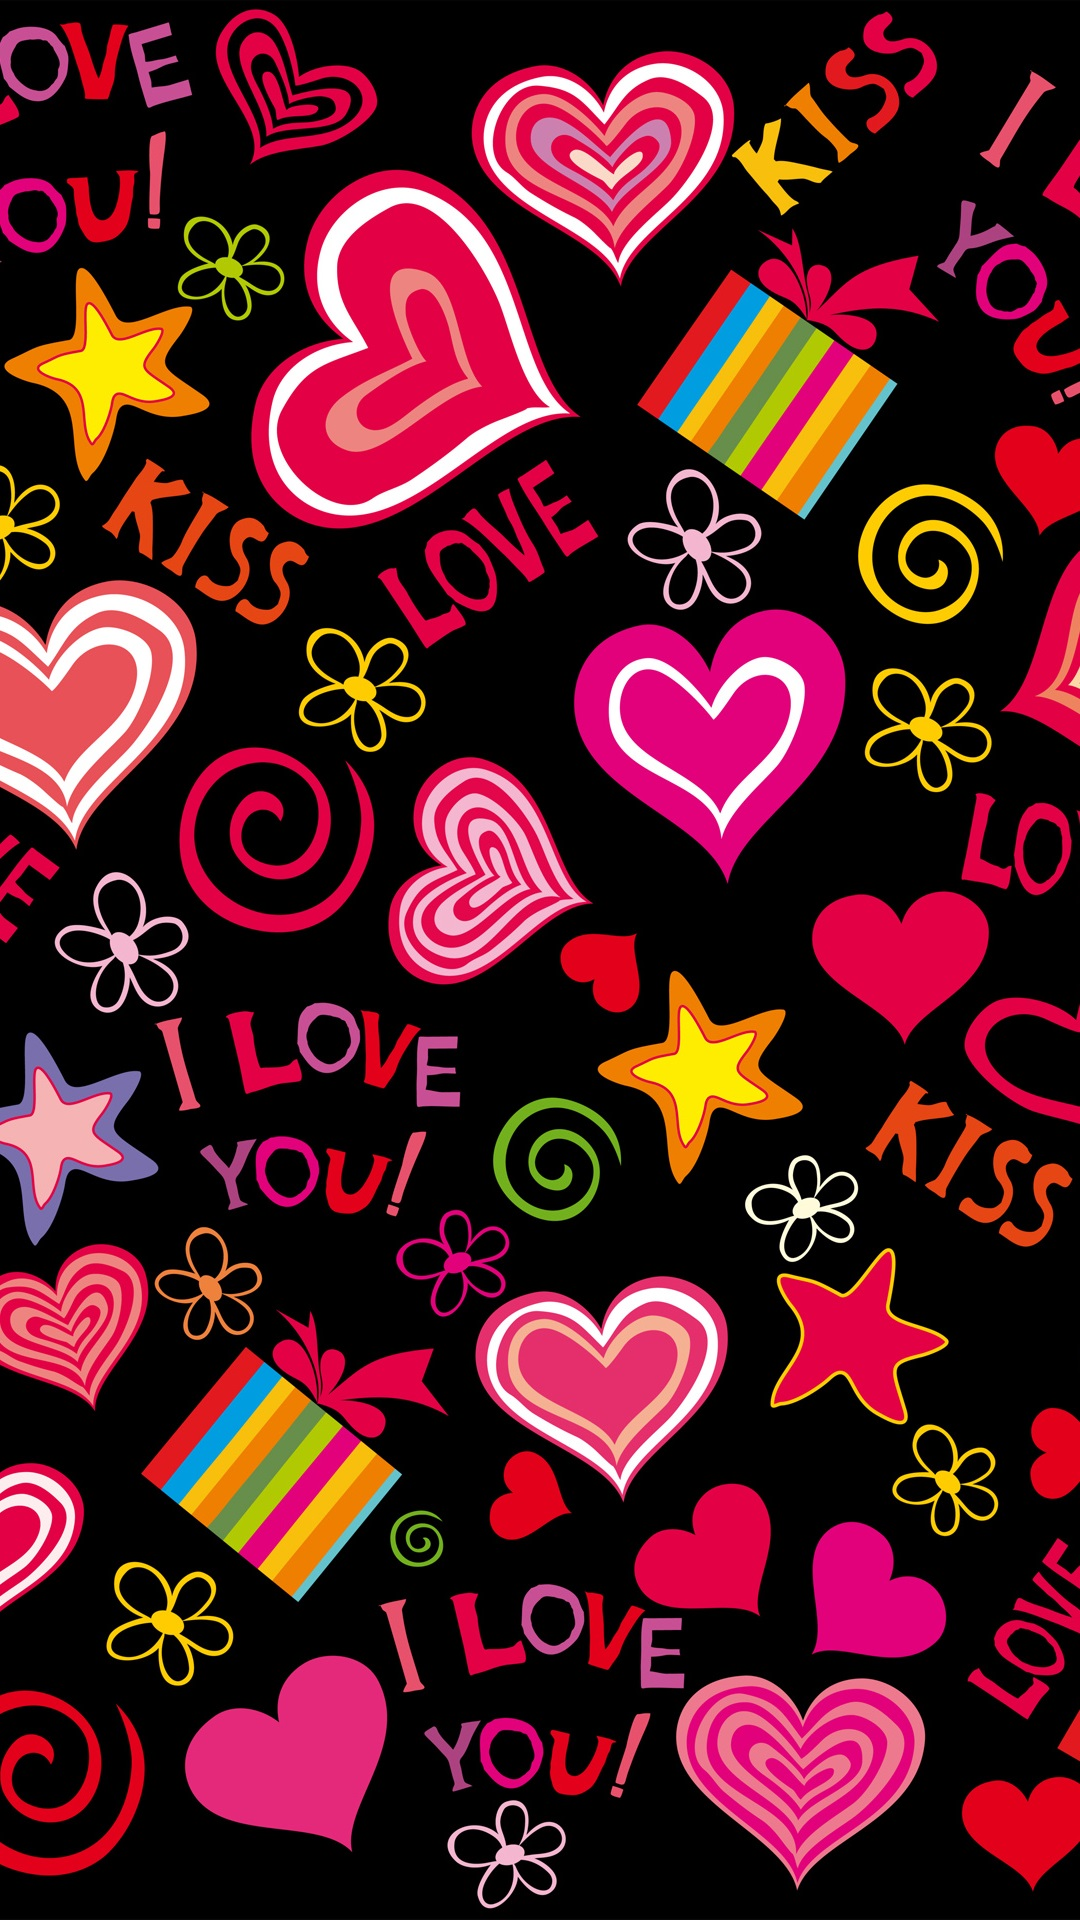 Iphone 6 Love Wallpaper : colorful love hearts, sweet, vector, romantic iPhone Wallpaper 1080x1920 iPhone 6 (6S) Plus ...